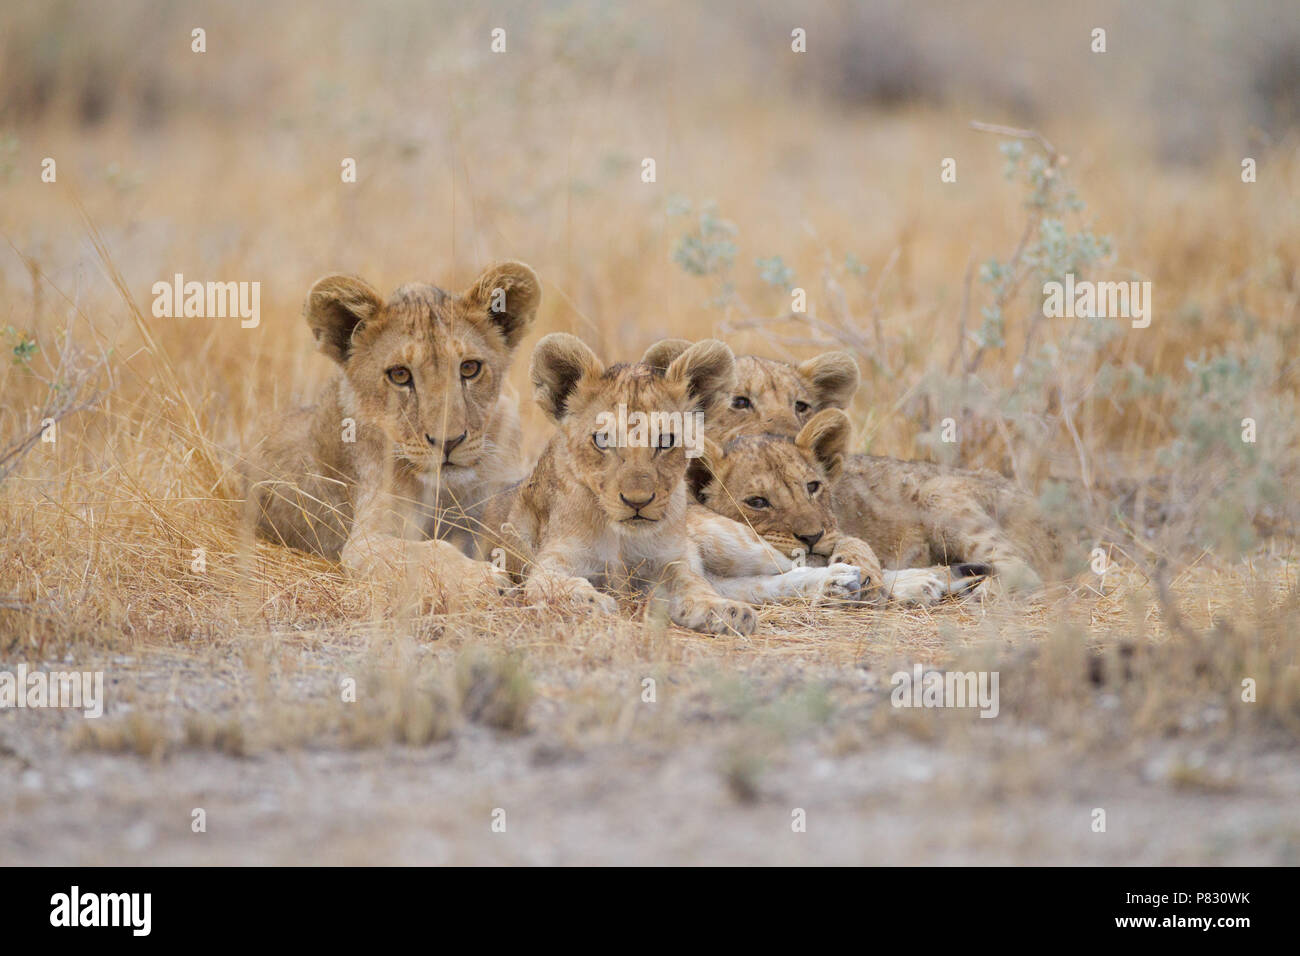 Cute baby lion cubs siblings in wilderness Stock Photo